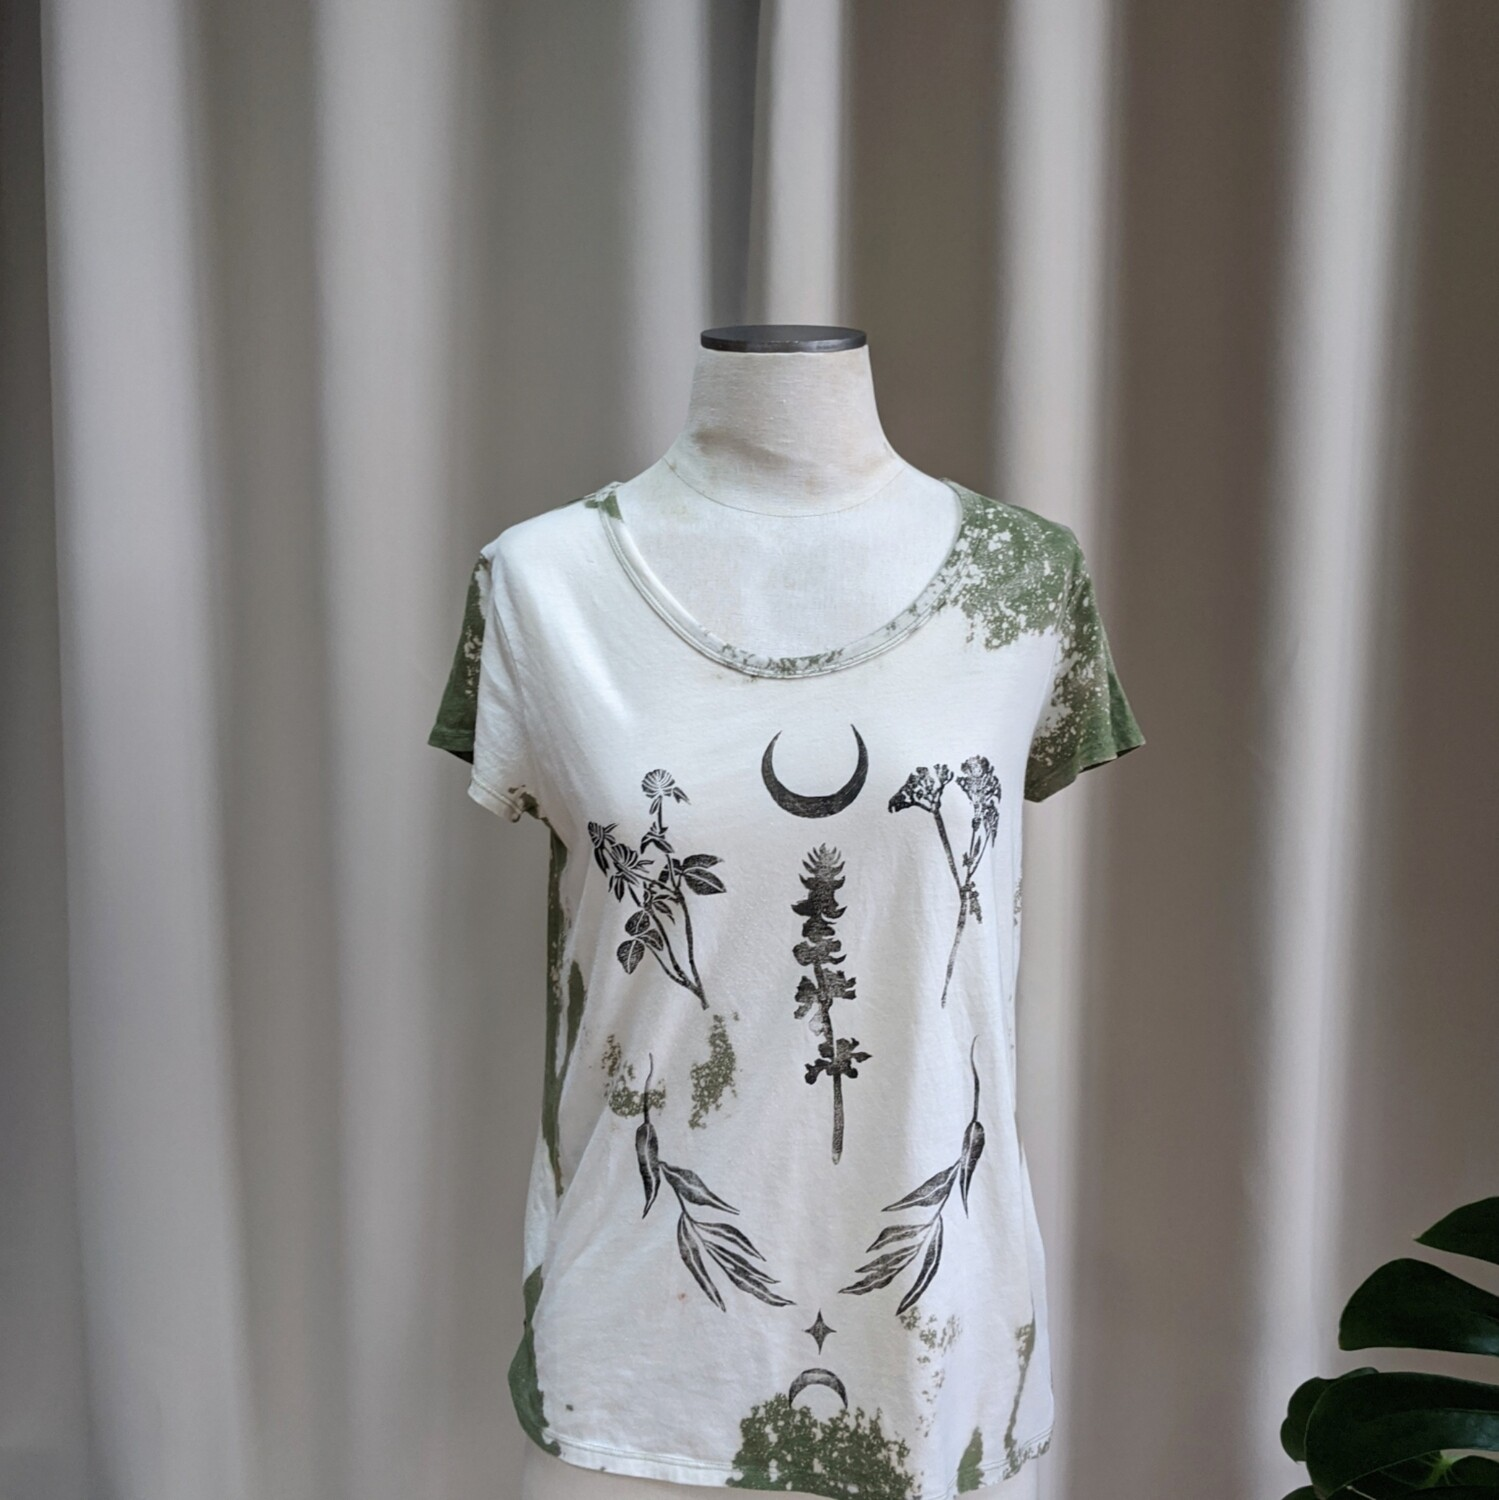 Block Printed Hand-Dyed T-Shirt